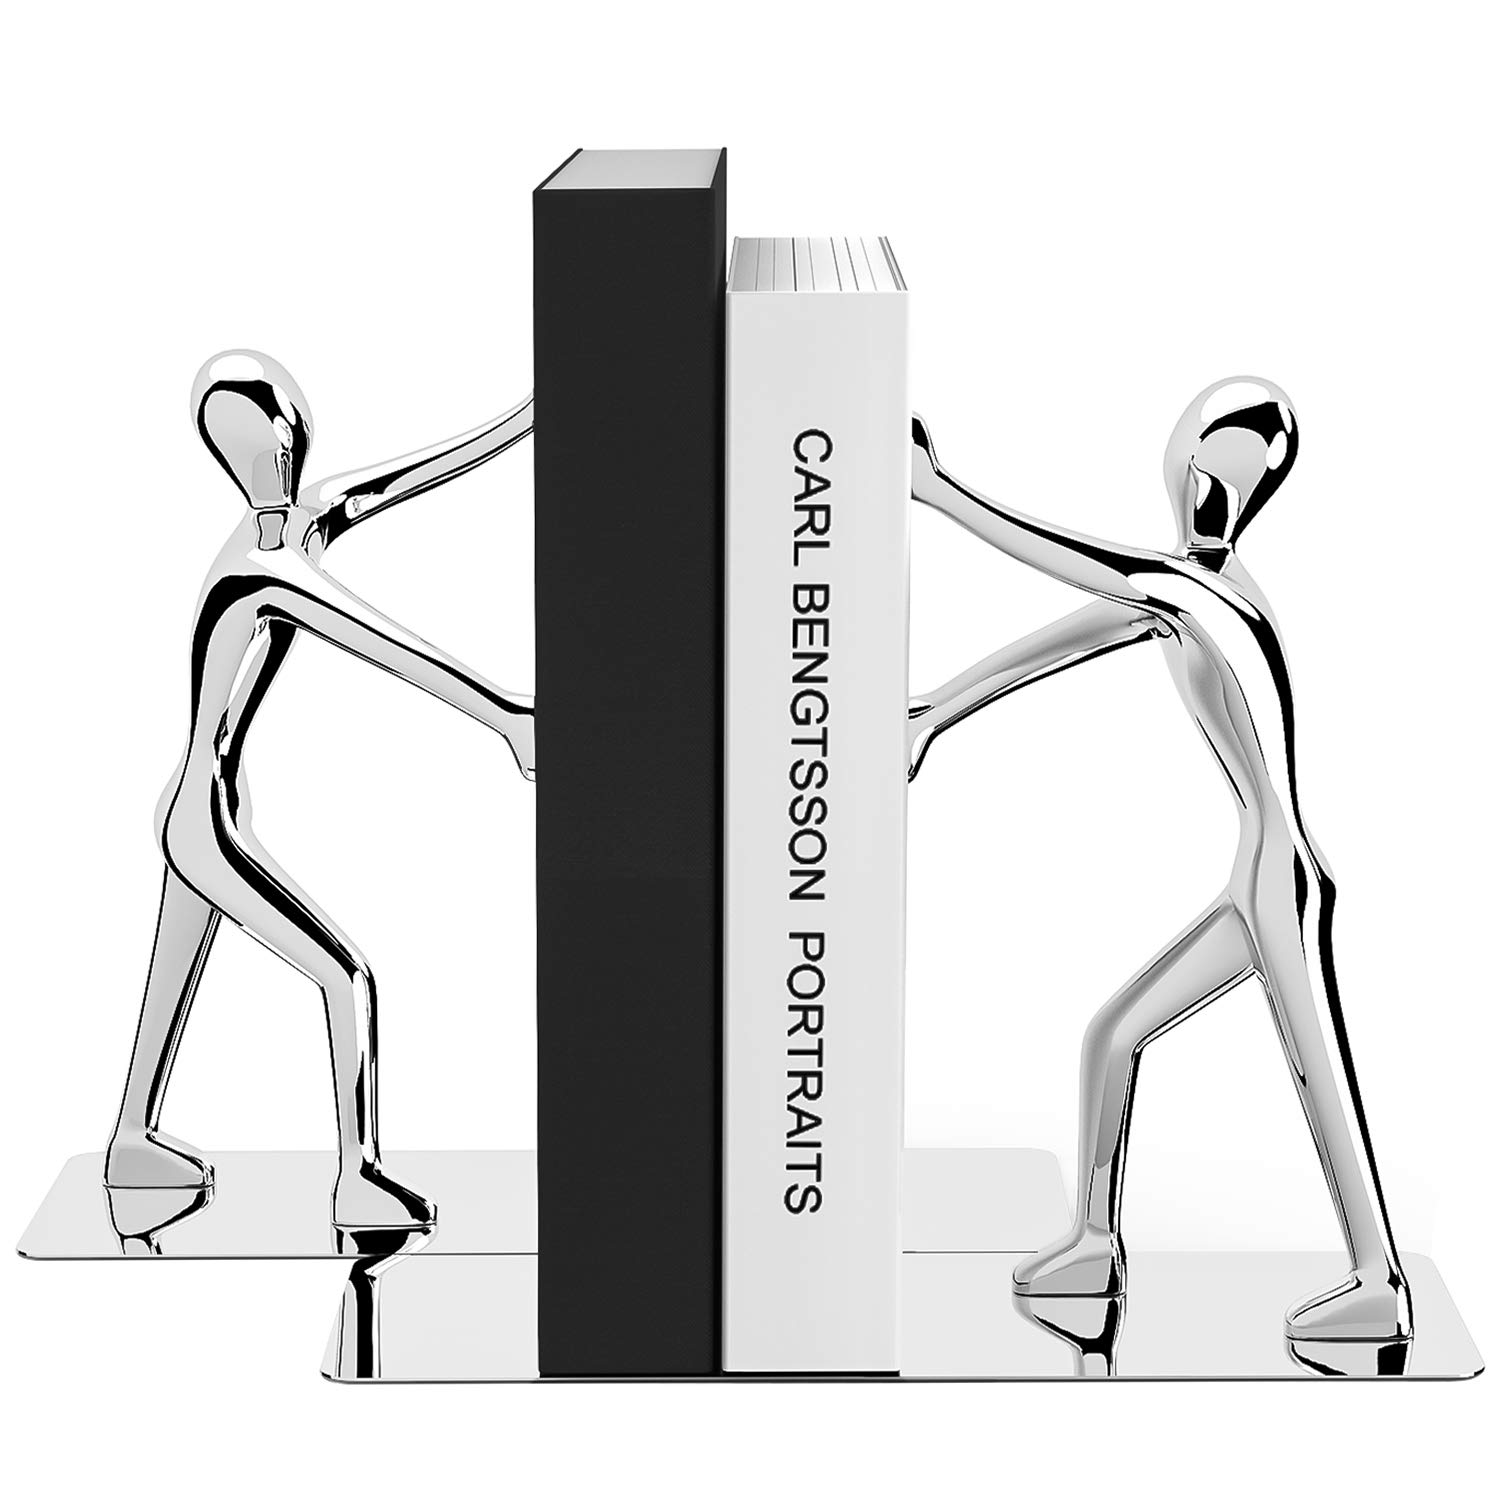 MROCO Heavy Duty Zinc Alloy Man Decorative Bookends, Non-skid, Metal Book Ends for Shelves, Book Support, Book Stopper for Books, Movies, Magazines, Video Games, 7.28 x 6.1 in, Silver, 1 Pair/2 Pieces by MROCO